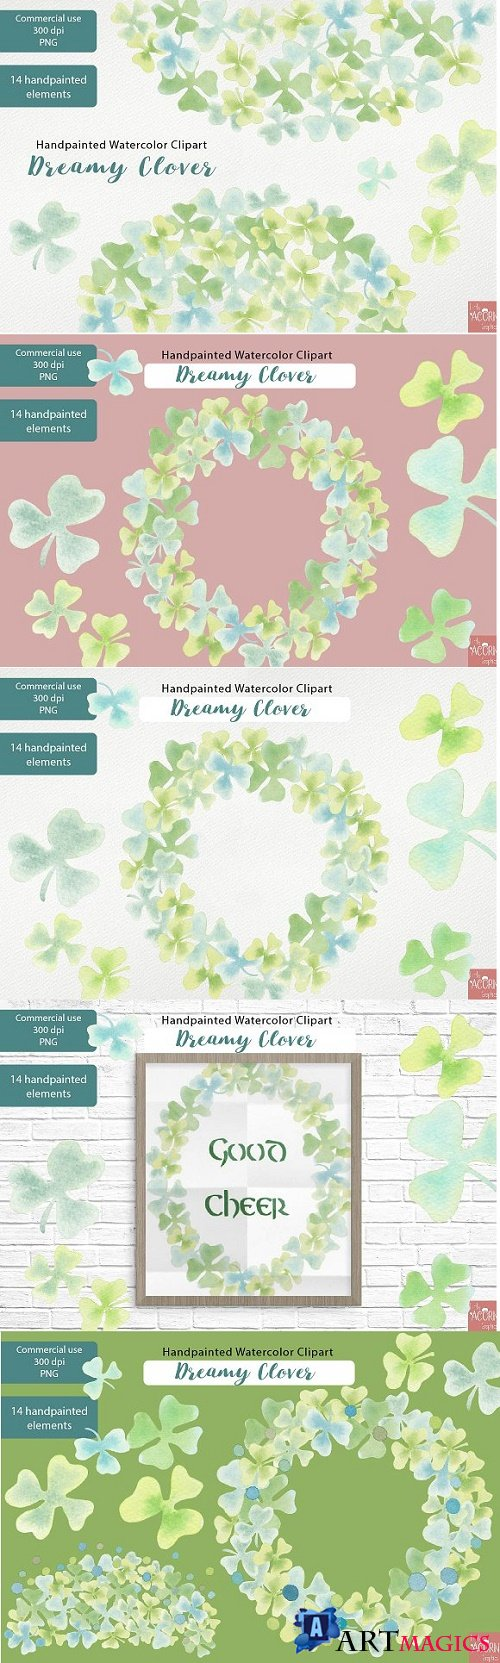 Watercolor Clipart Dreamy Clover PNG - 2322289